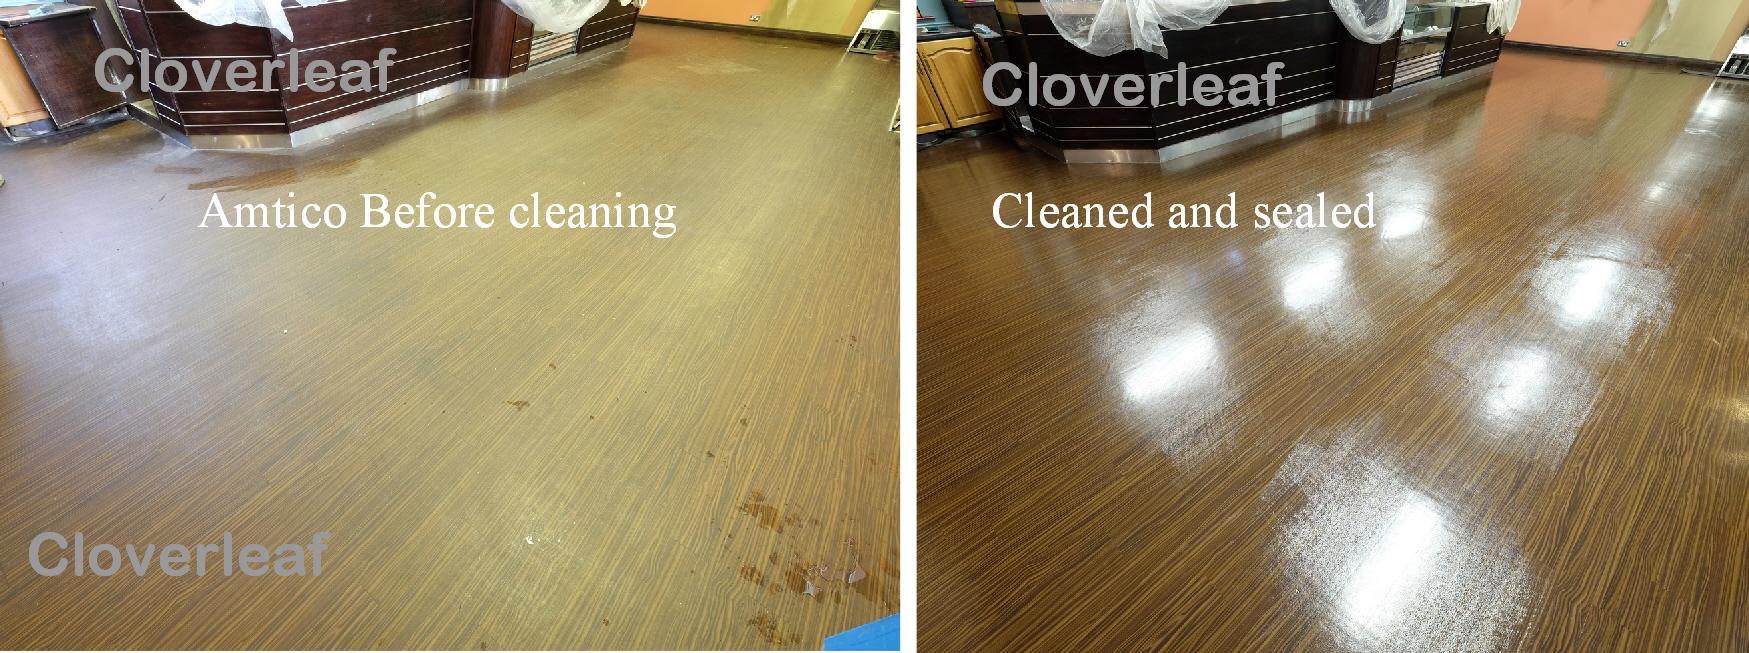 Amtico Karndean floor clean and seal Cheshire